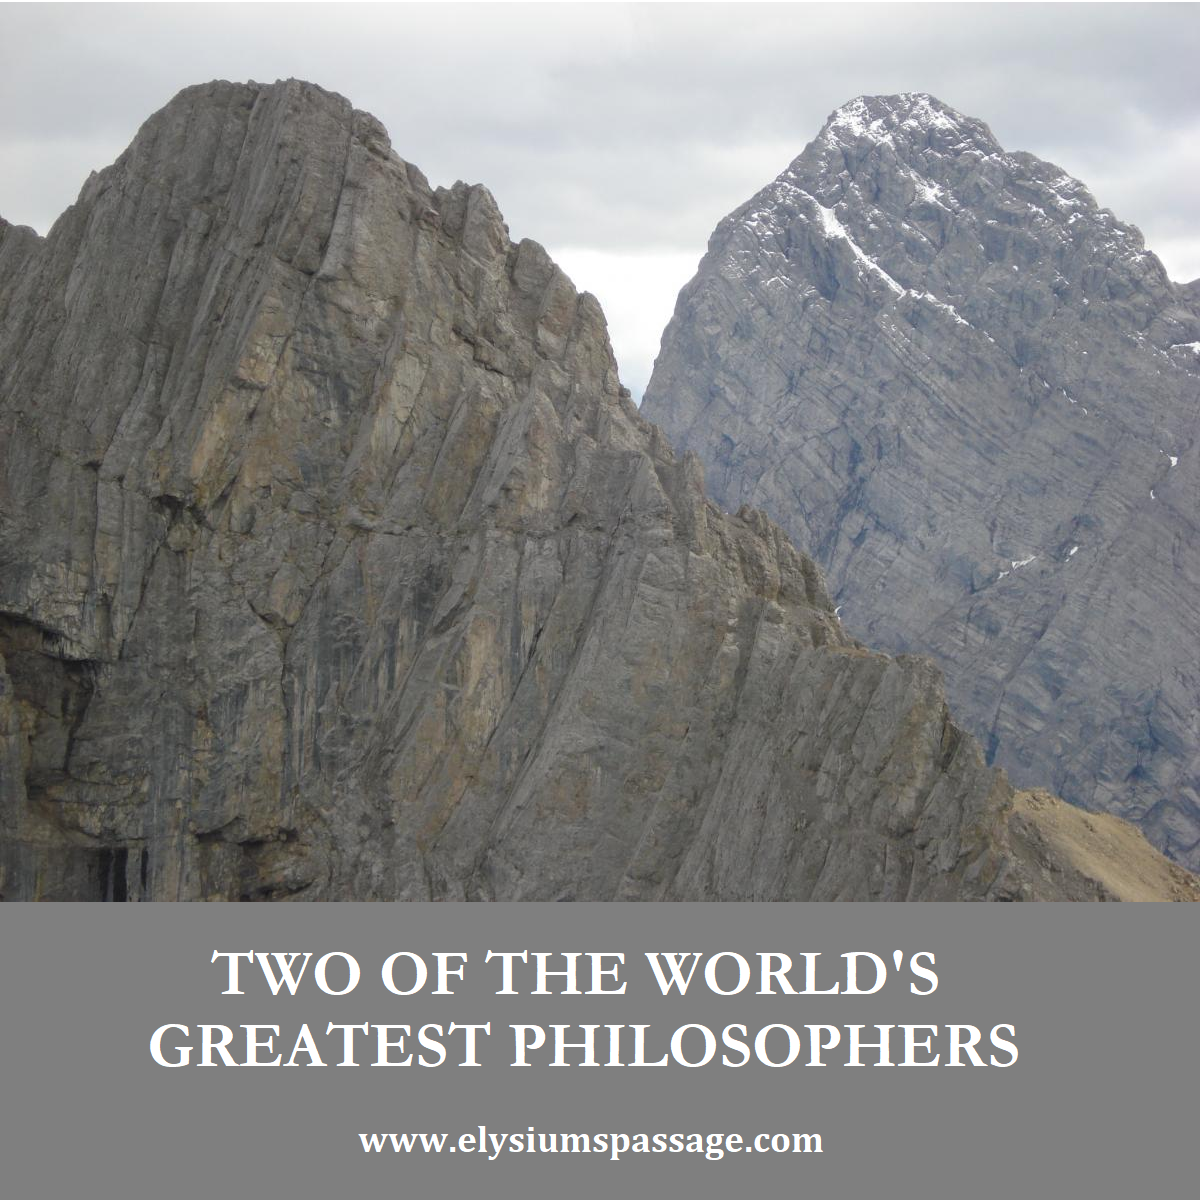 TWO GREAT PHILOSOPHERS PHILOSOPHERS DON'T KNOW ABOUT